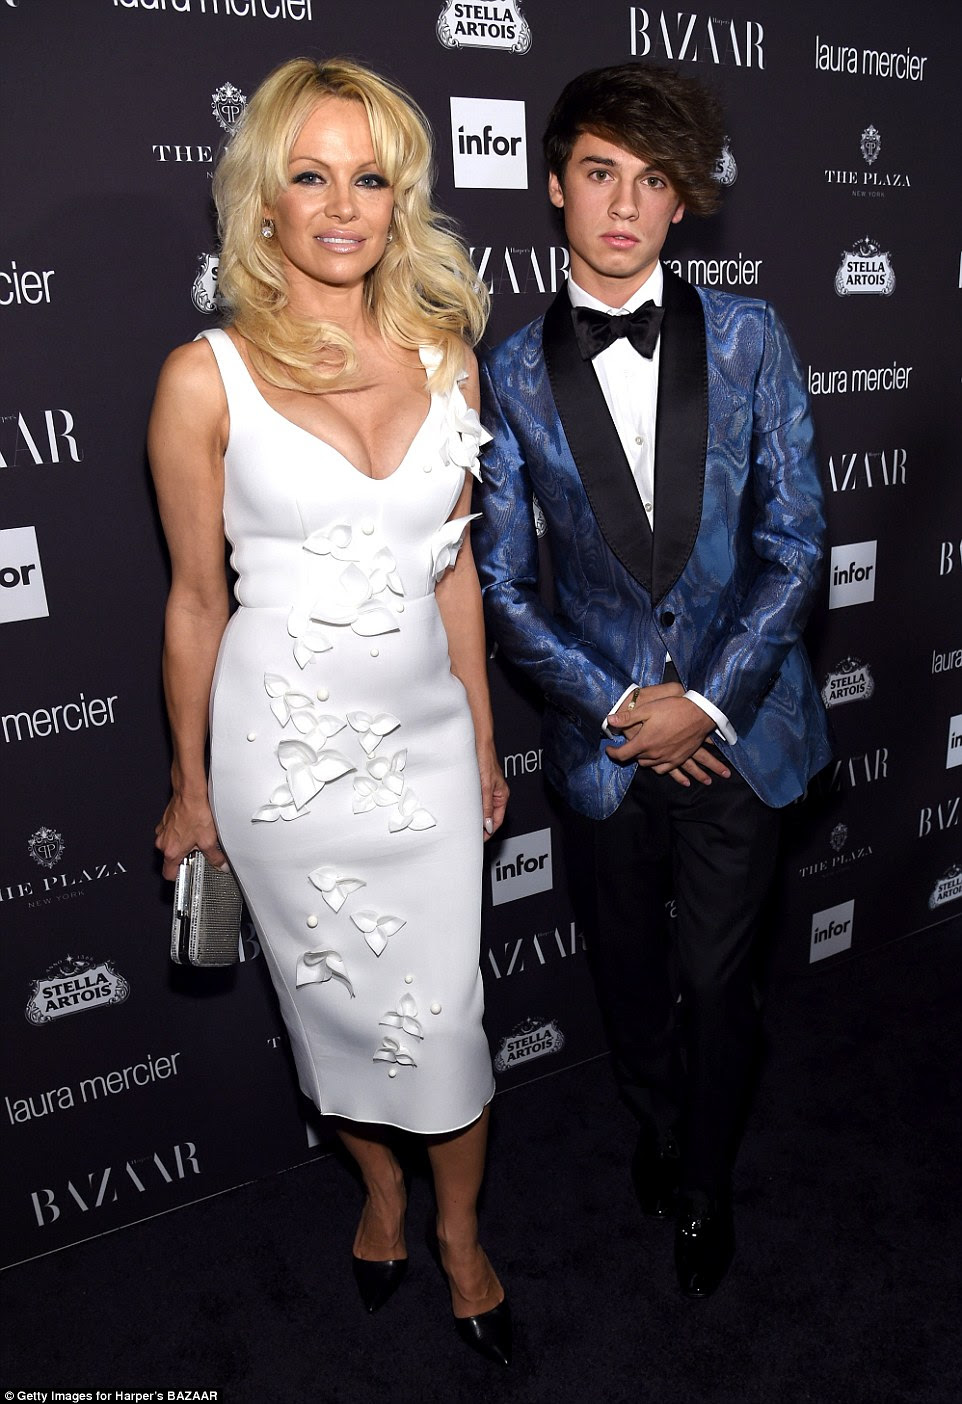 Mother and son: Pamela Anderson brought her son Dylan Jagger Lee as her date for the evening. The 18-year-old looked dapper next to his famous mother in a navy blue tux jacket and black trousers with coordinating bow tie